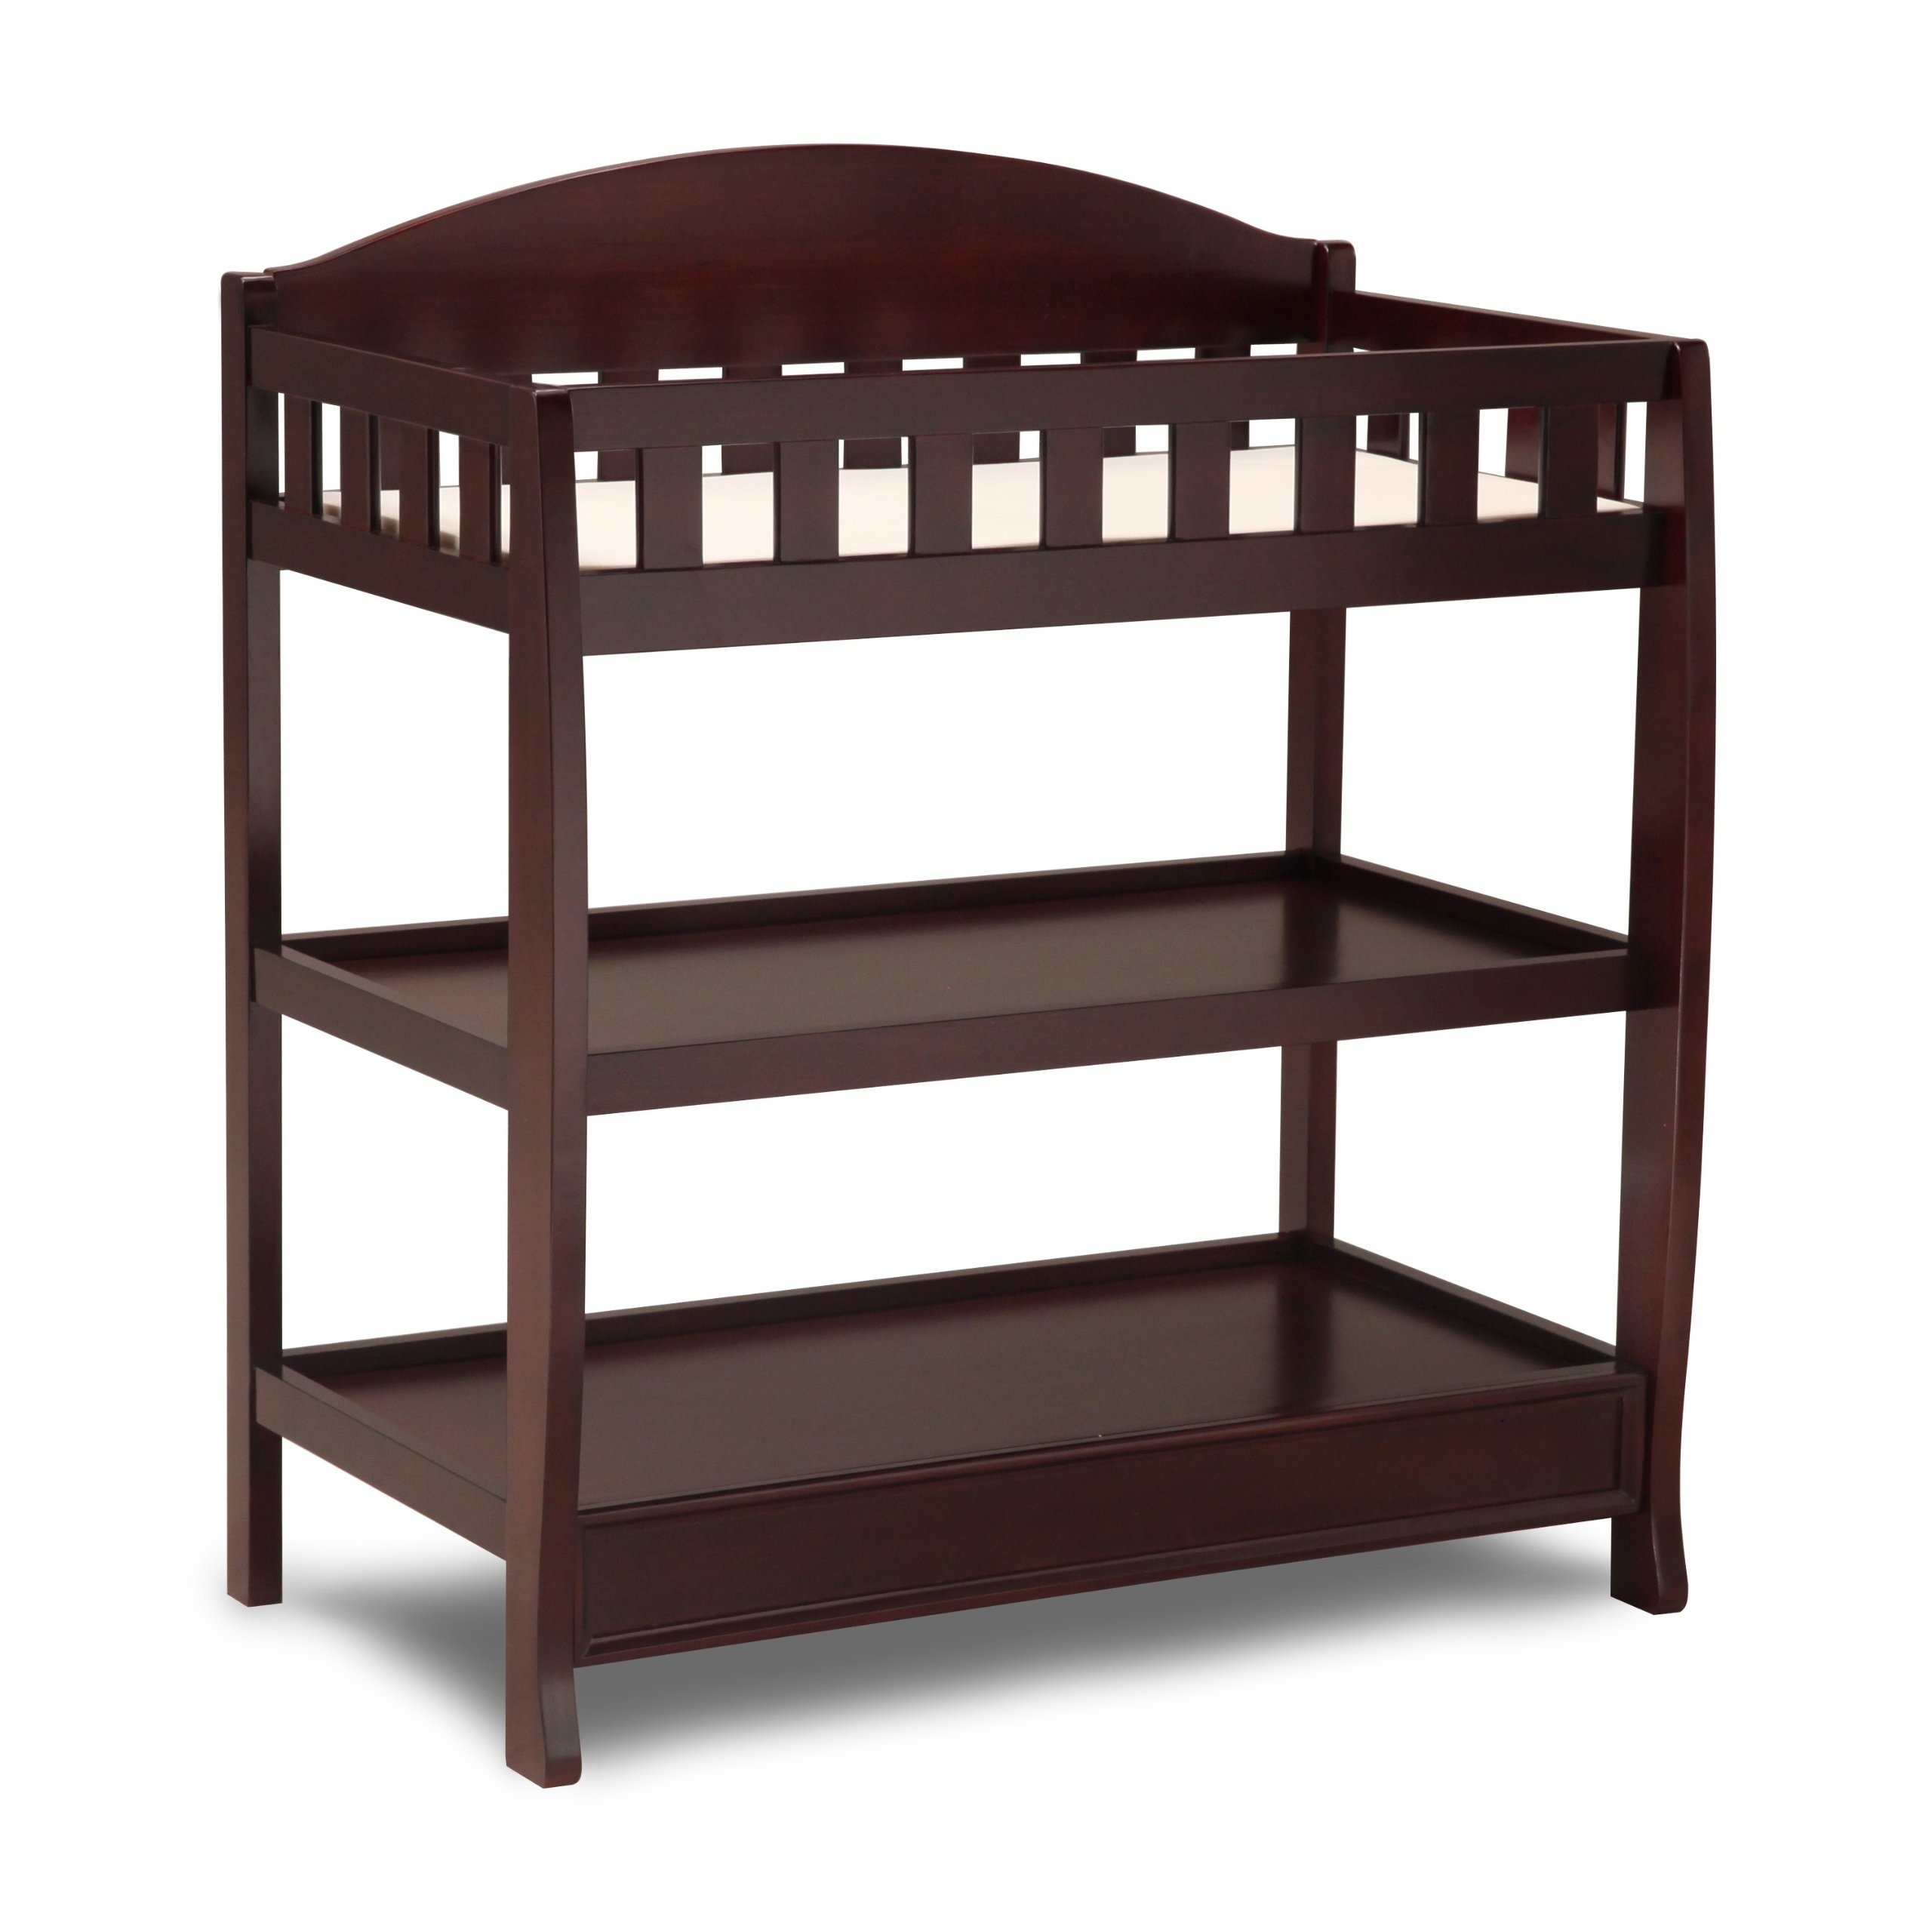 Delta Children Infant Changing Table with Pad, Espresso Cherry by Delta Children (Image #1)